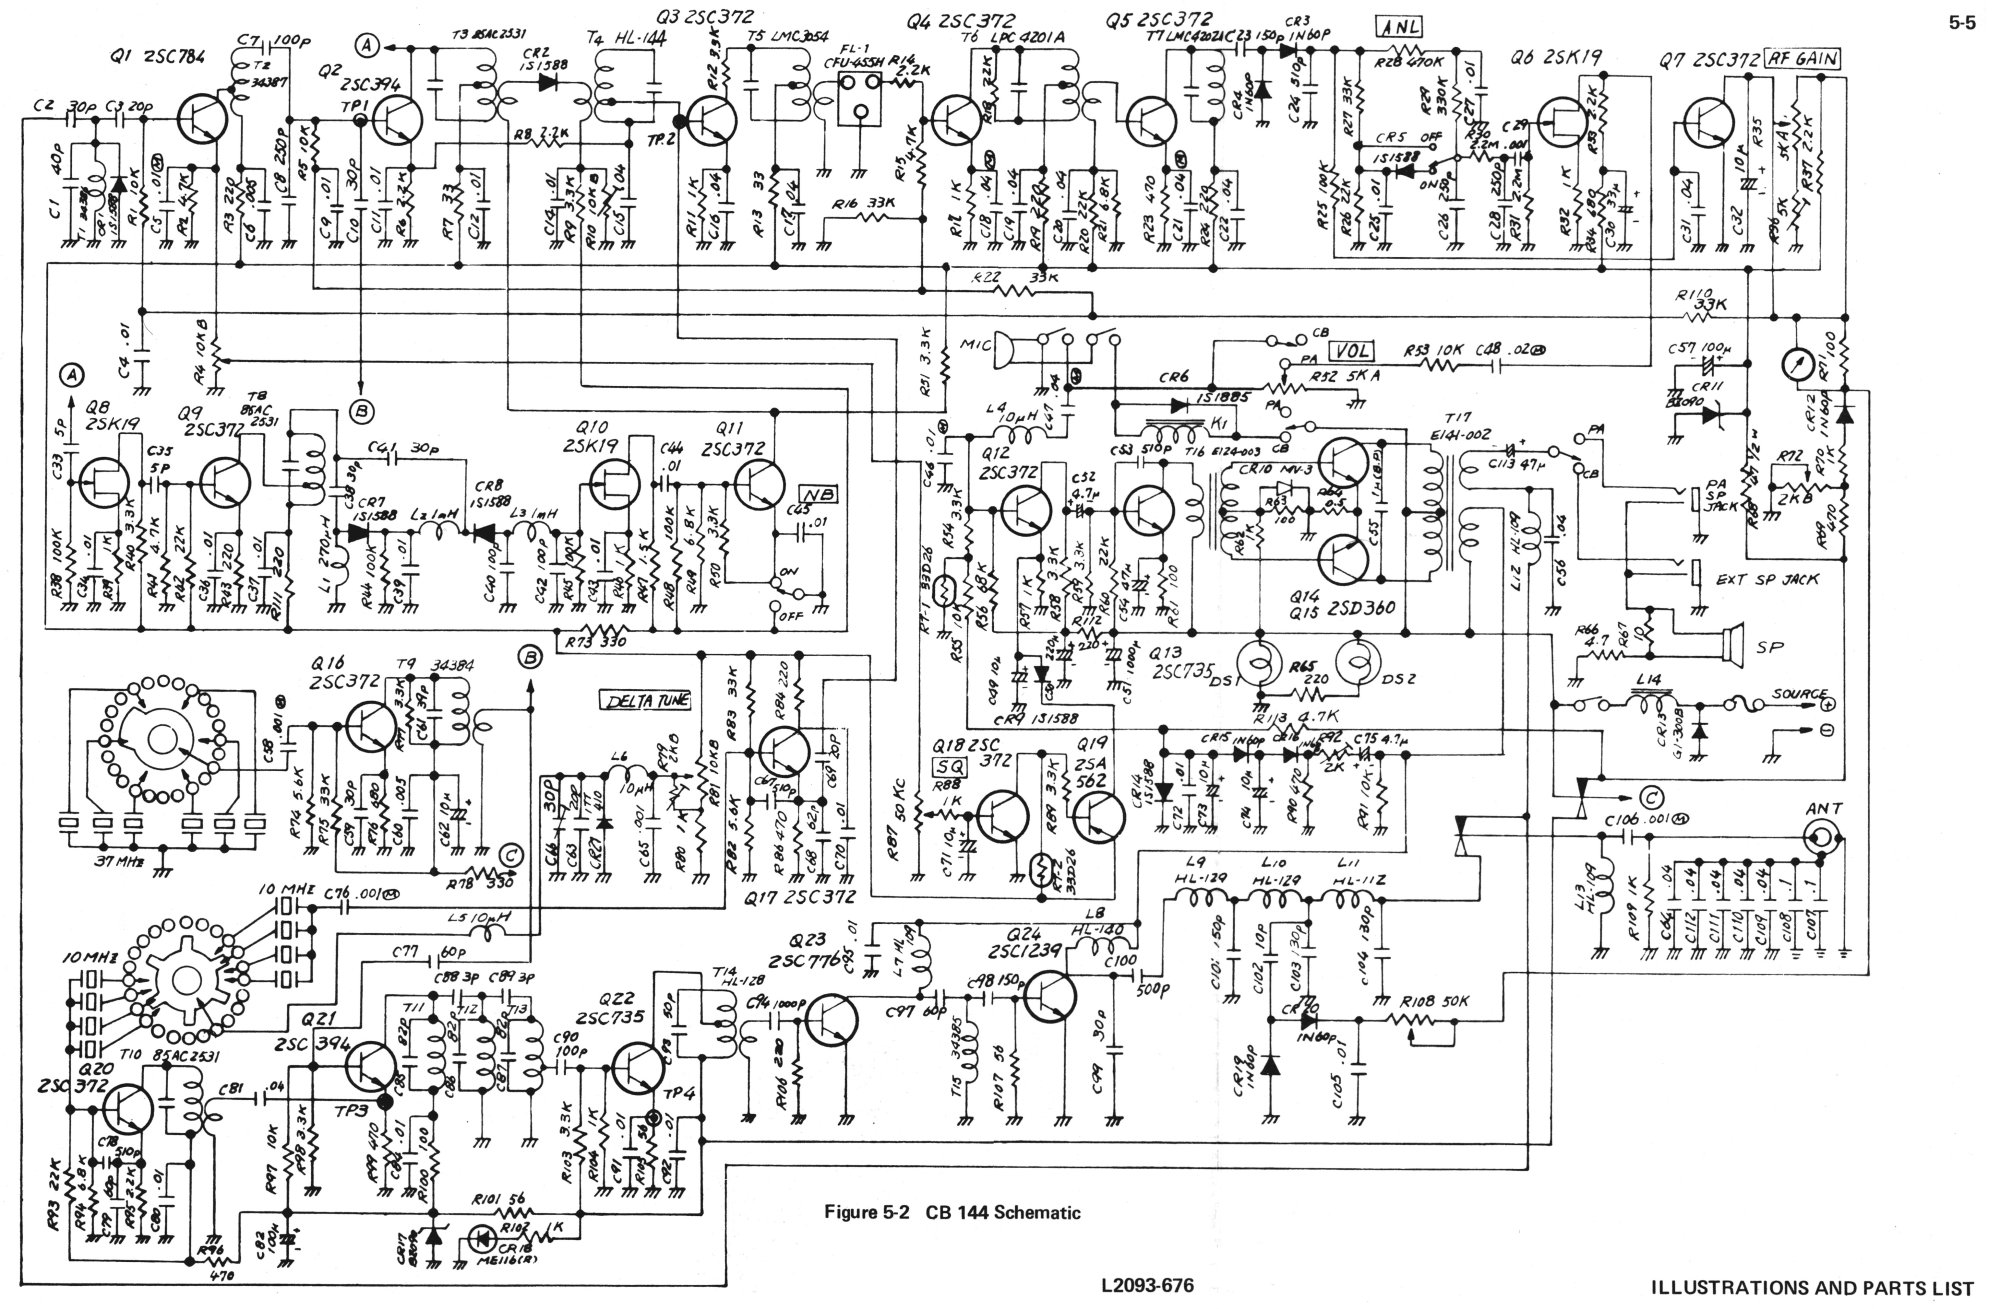 hight resolution of here is a handy copy of the schematic